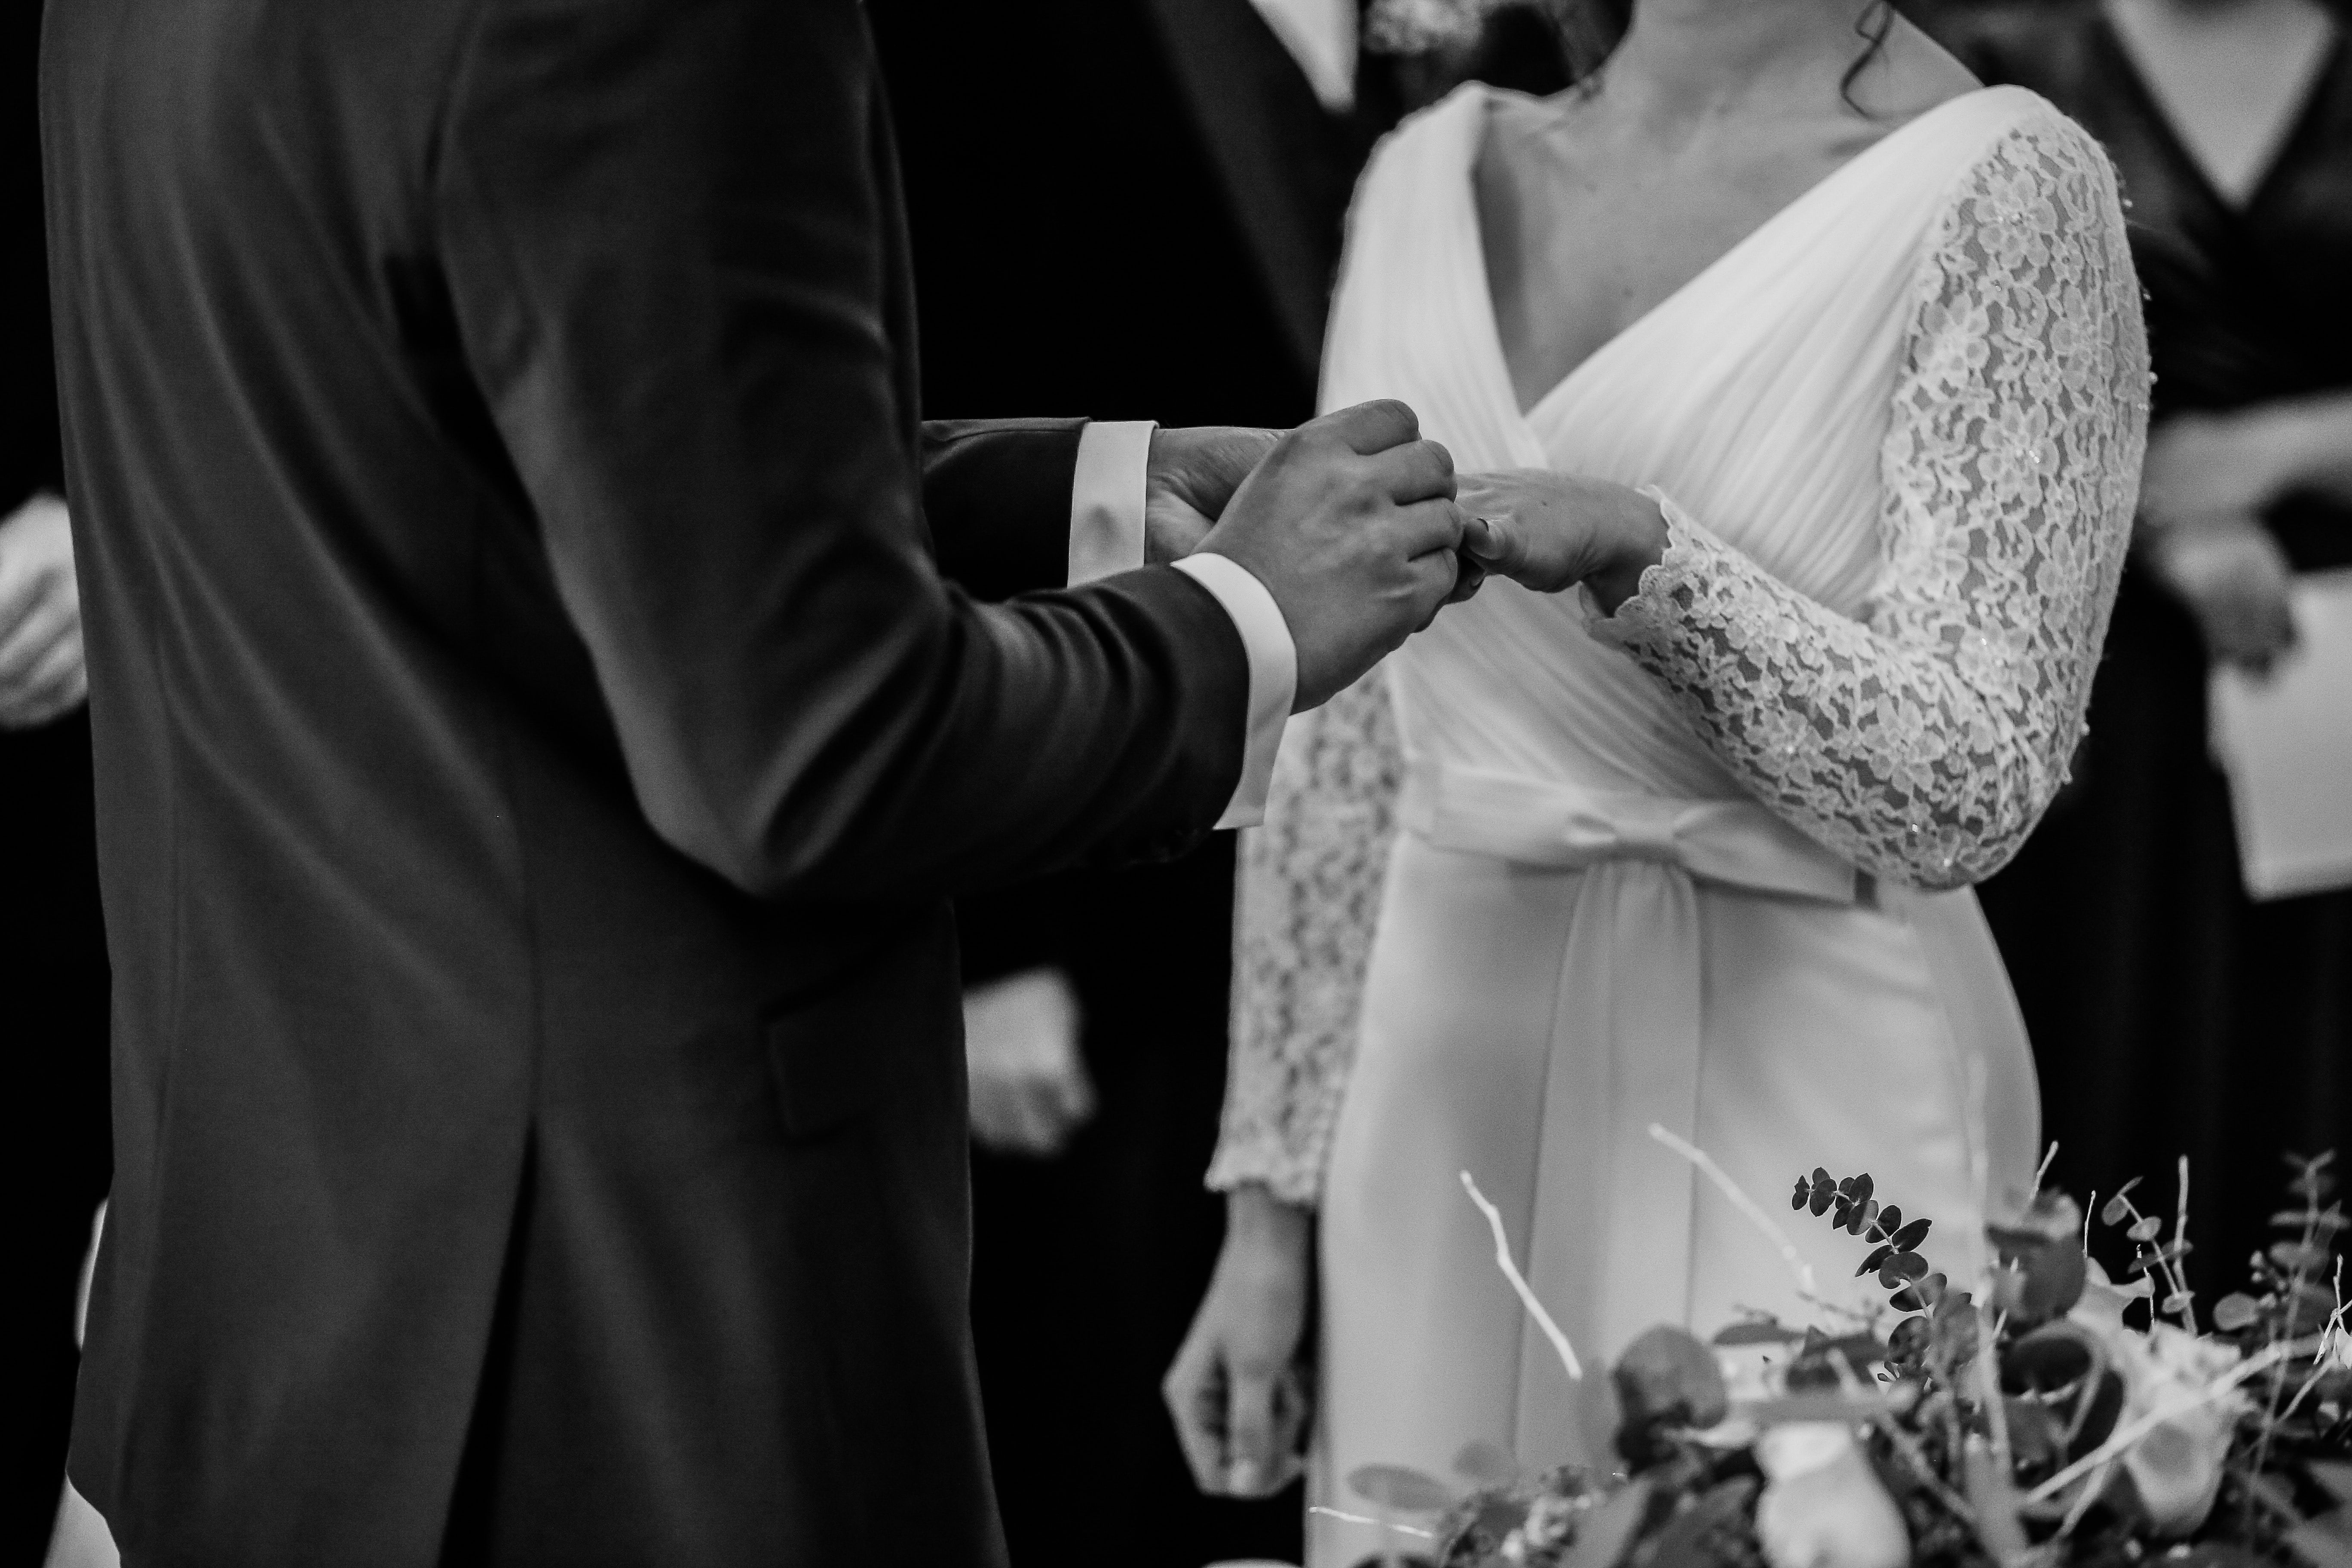 Take It From Us We Know A Thing Or Two About Weddings On This Weddingwi Drone Photography Wedding Wedding Ceremony Music Affordable Wedding Photography